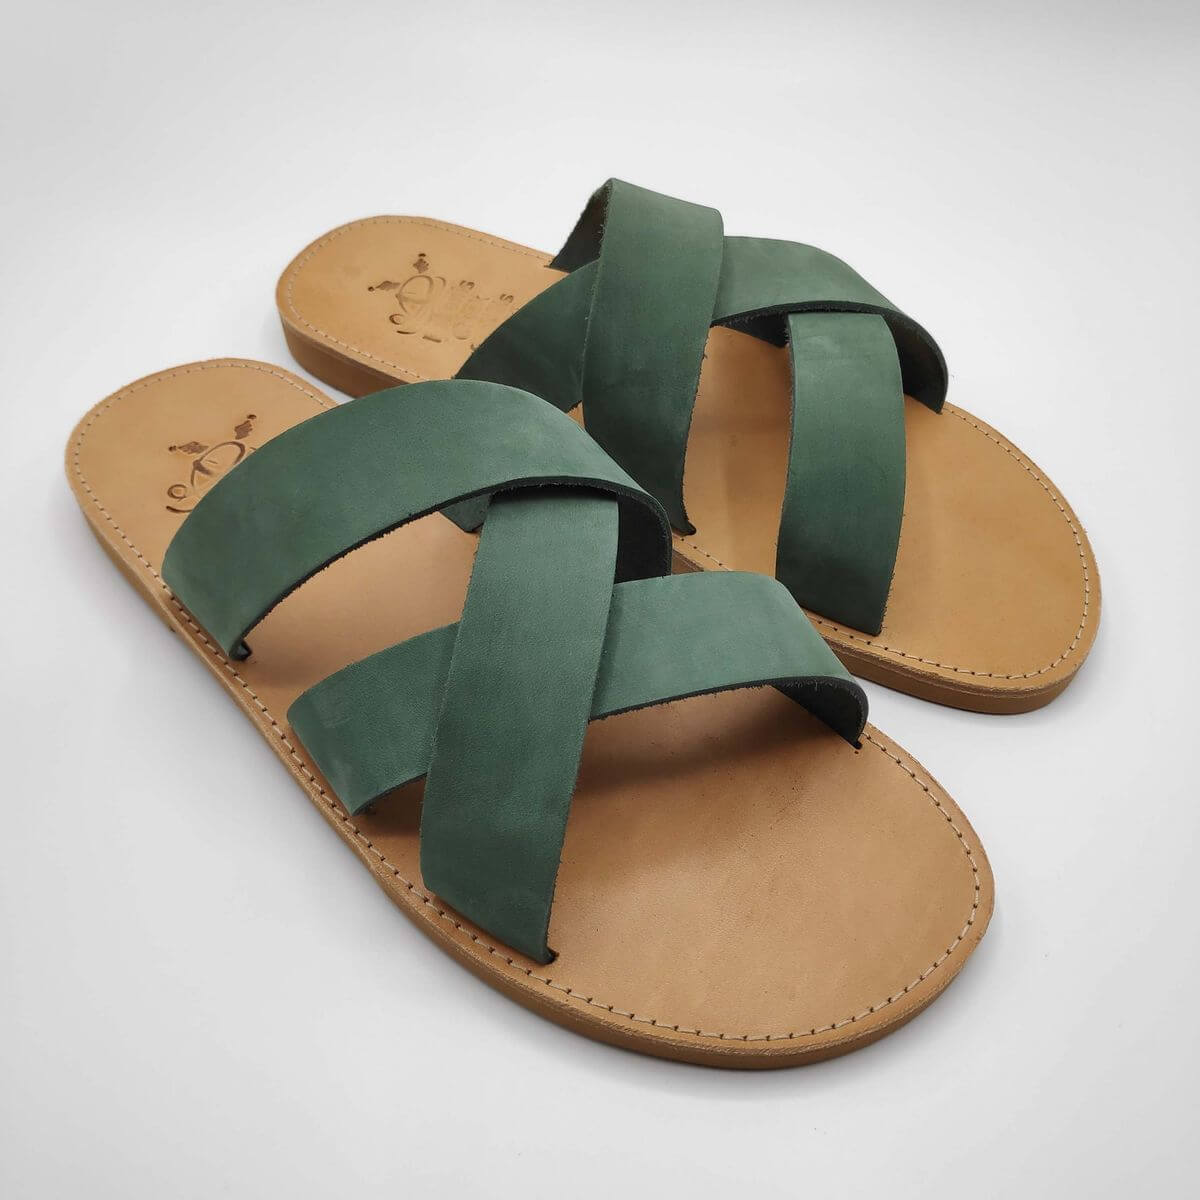 leather sandals for men green three straps criss cross side view - Avithos Men